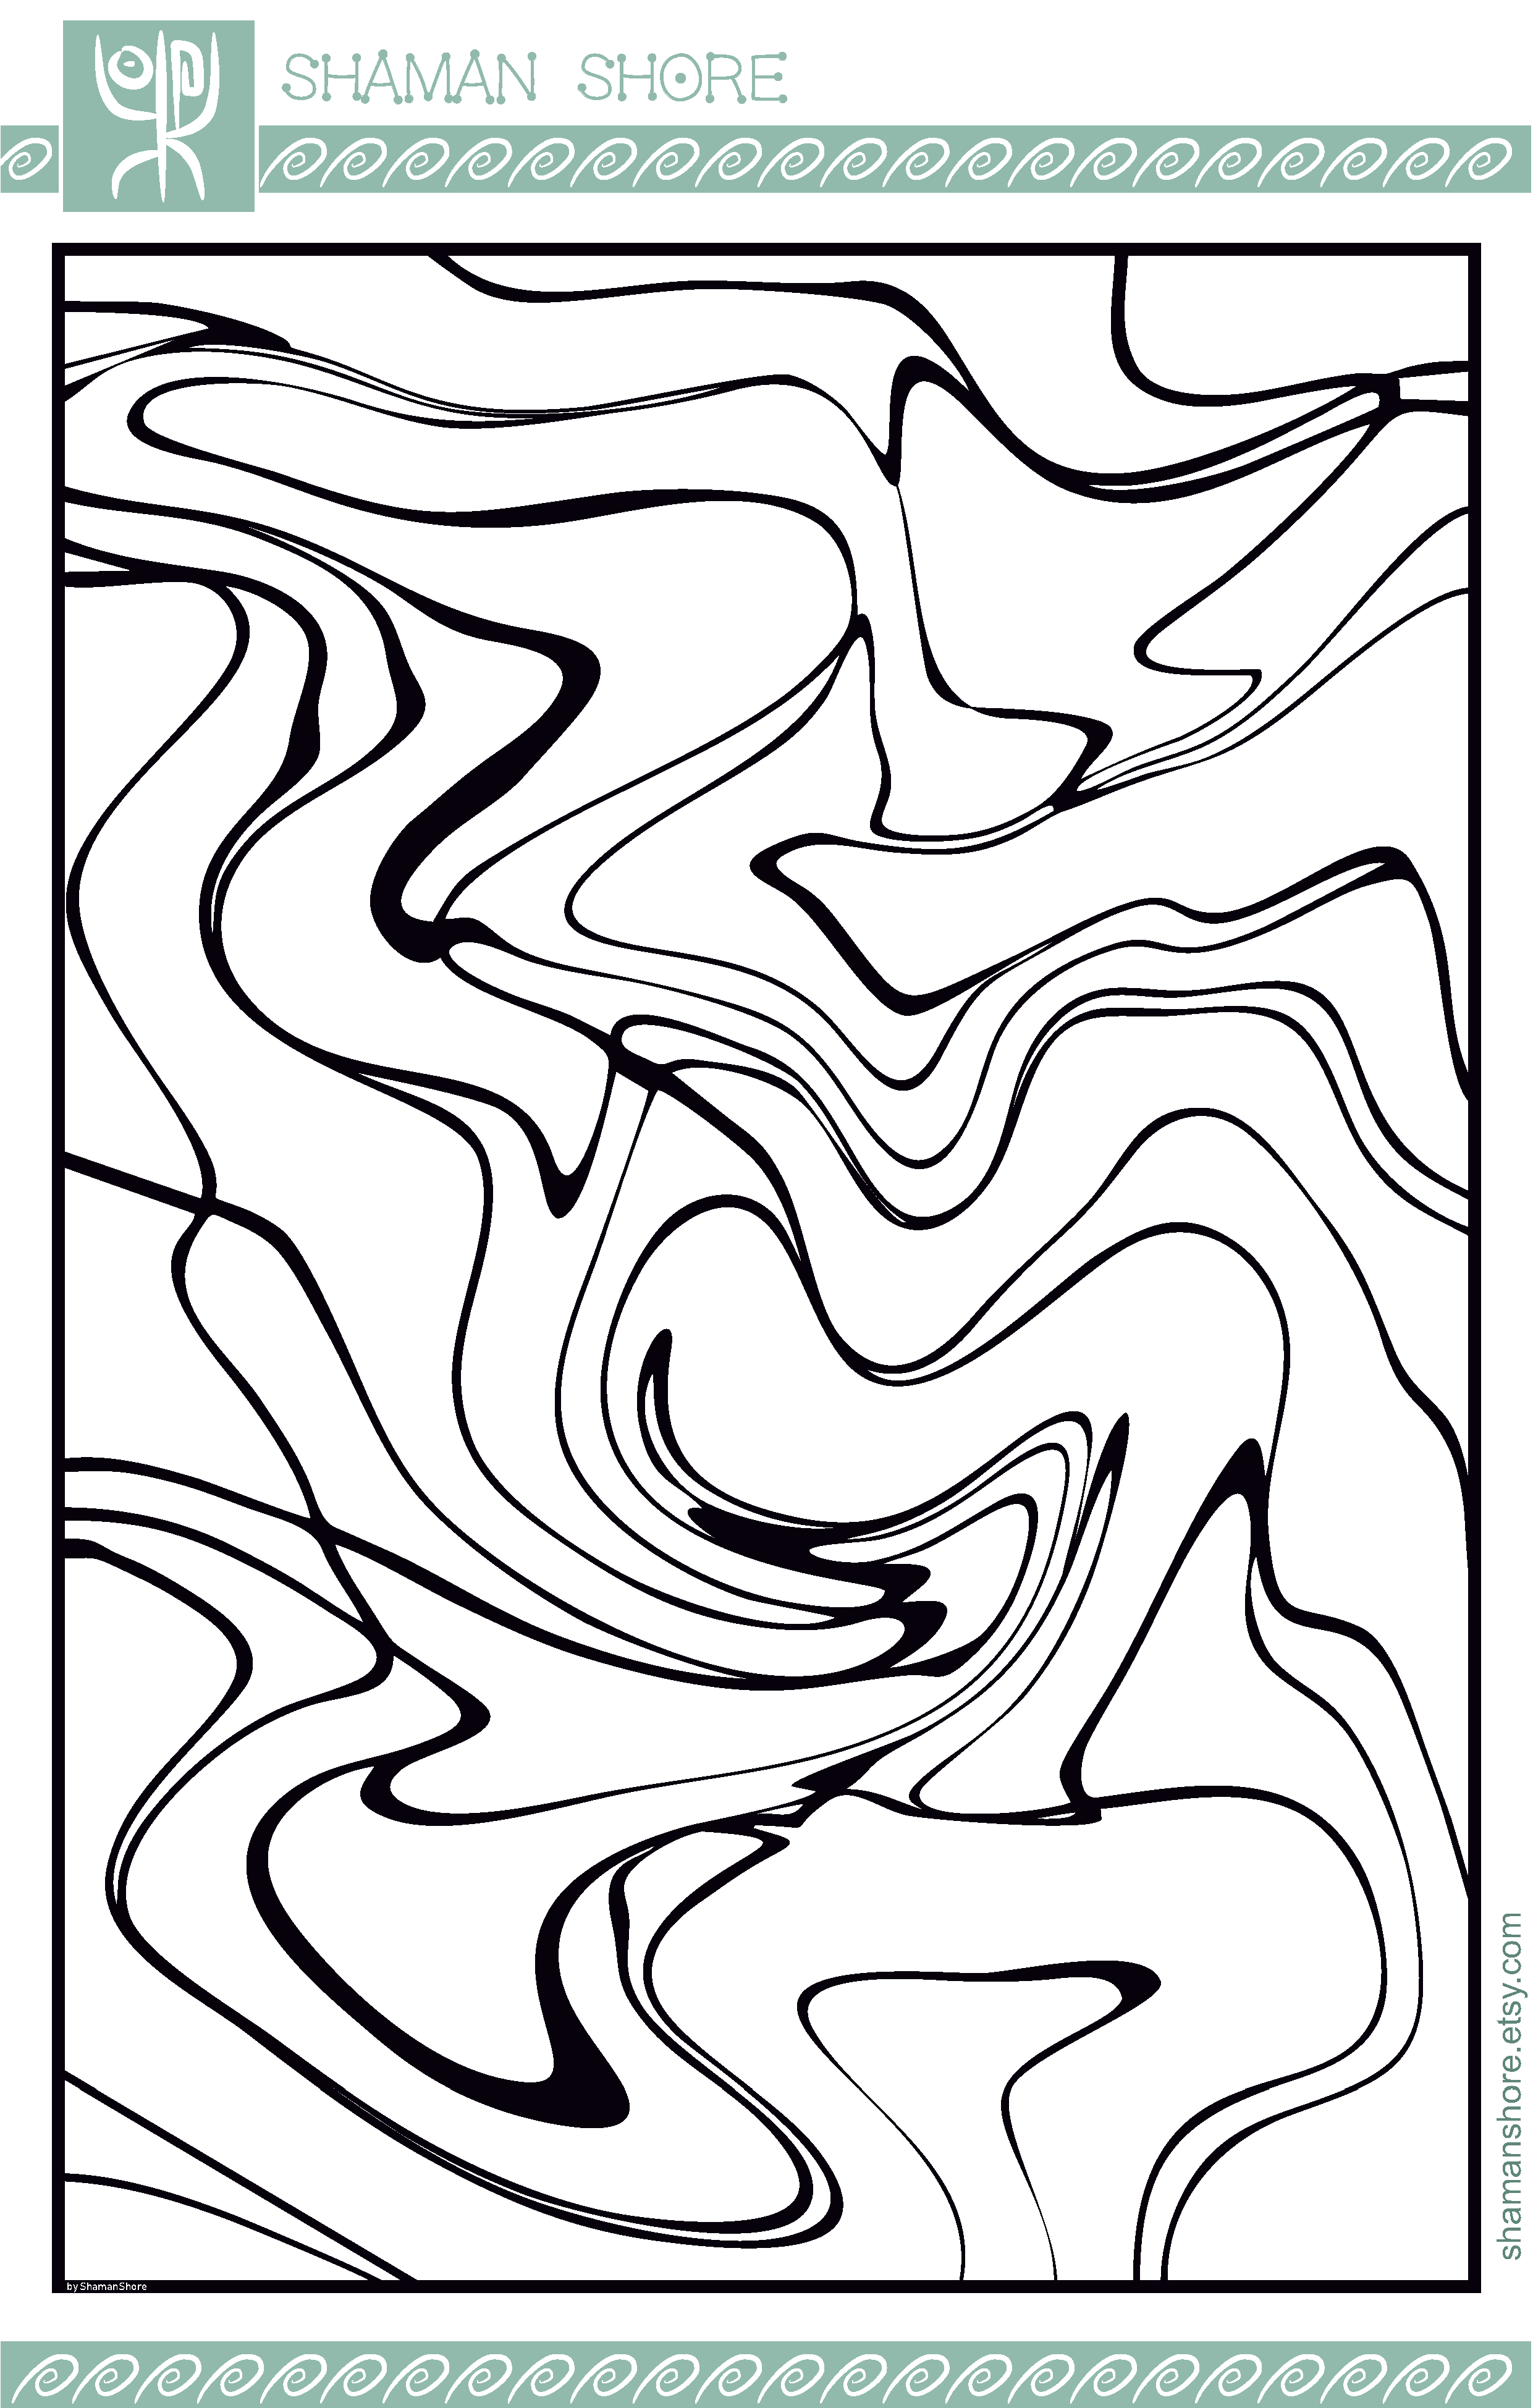 PDF Adult Coloring Book, Abstract Adult Digital Coloring ...